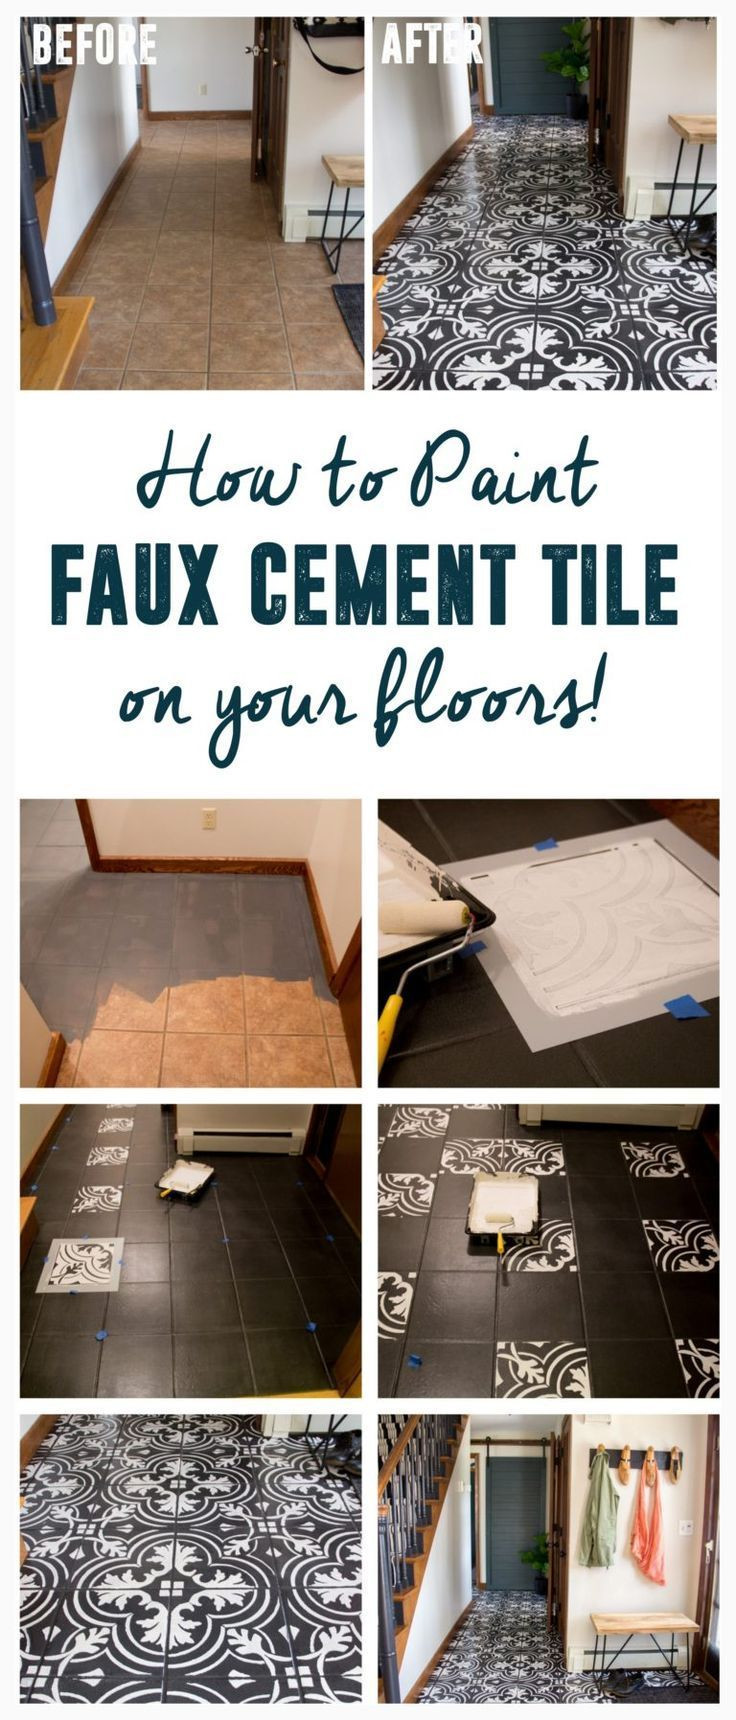 hardwood floor refinishing raleigh nc of 96 best floored images on pinterest homes diy flooring and floor for diy faux cement tile how to paint tile diy faux cement tile floors www